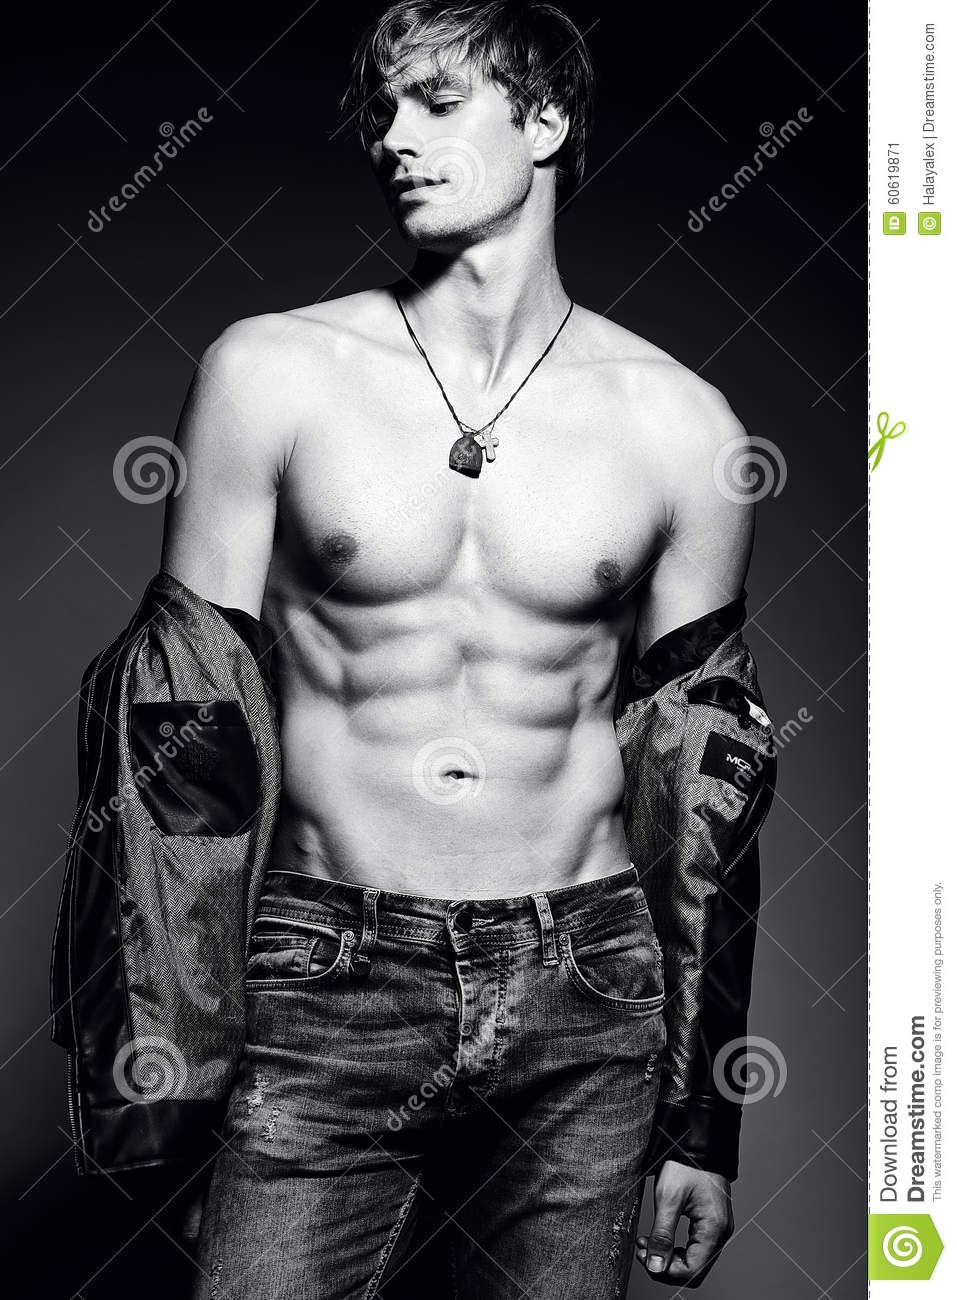 handsome muscled fit male model man posing in studio showing his abdominal muscles